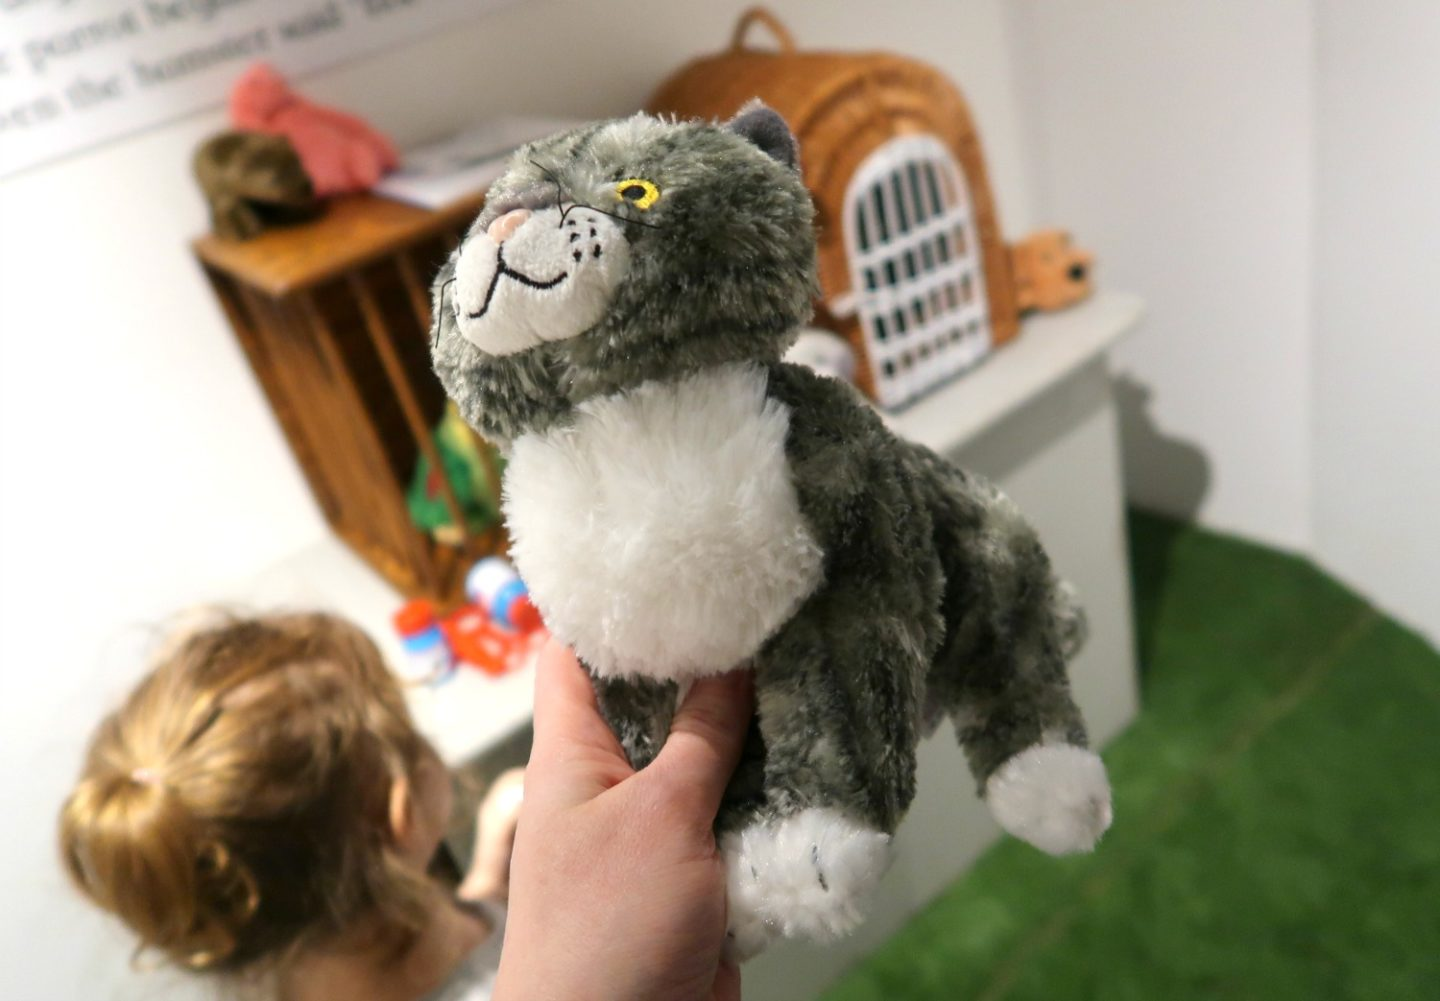 Mog the cat at the Discover Children's Story Centre